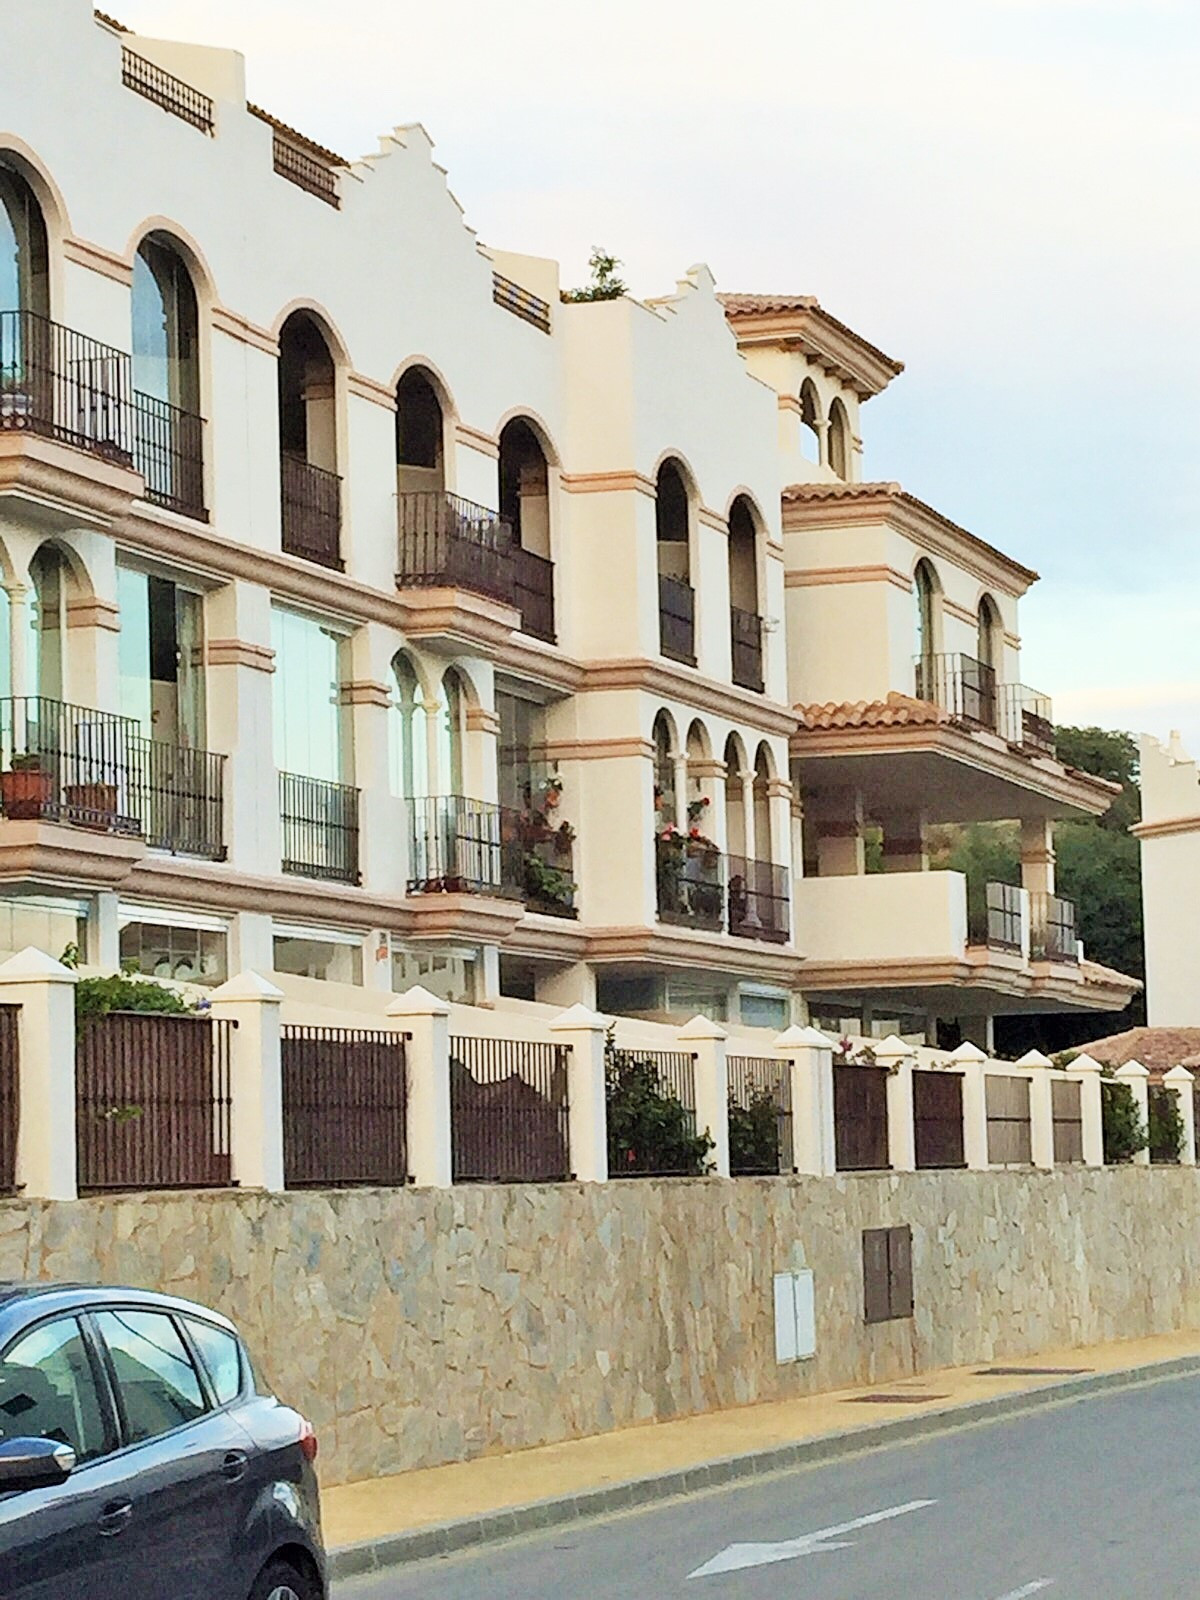 A opportunity to buy a luxury apartment in the most sought after area on the Costa del Sol - La Cala,Spain